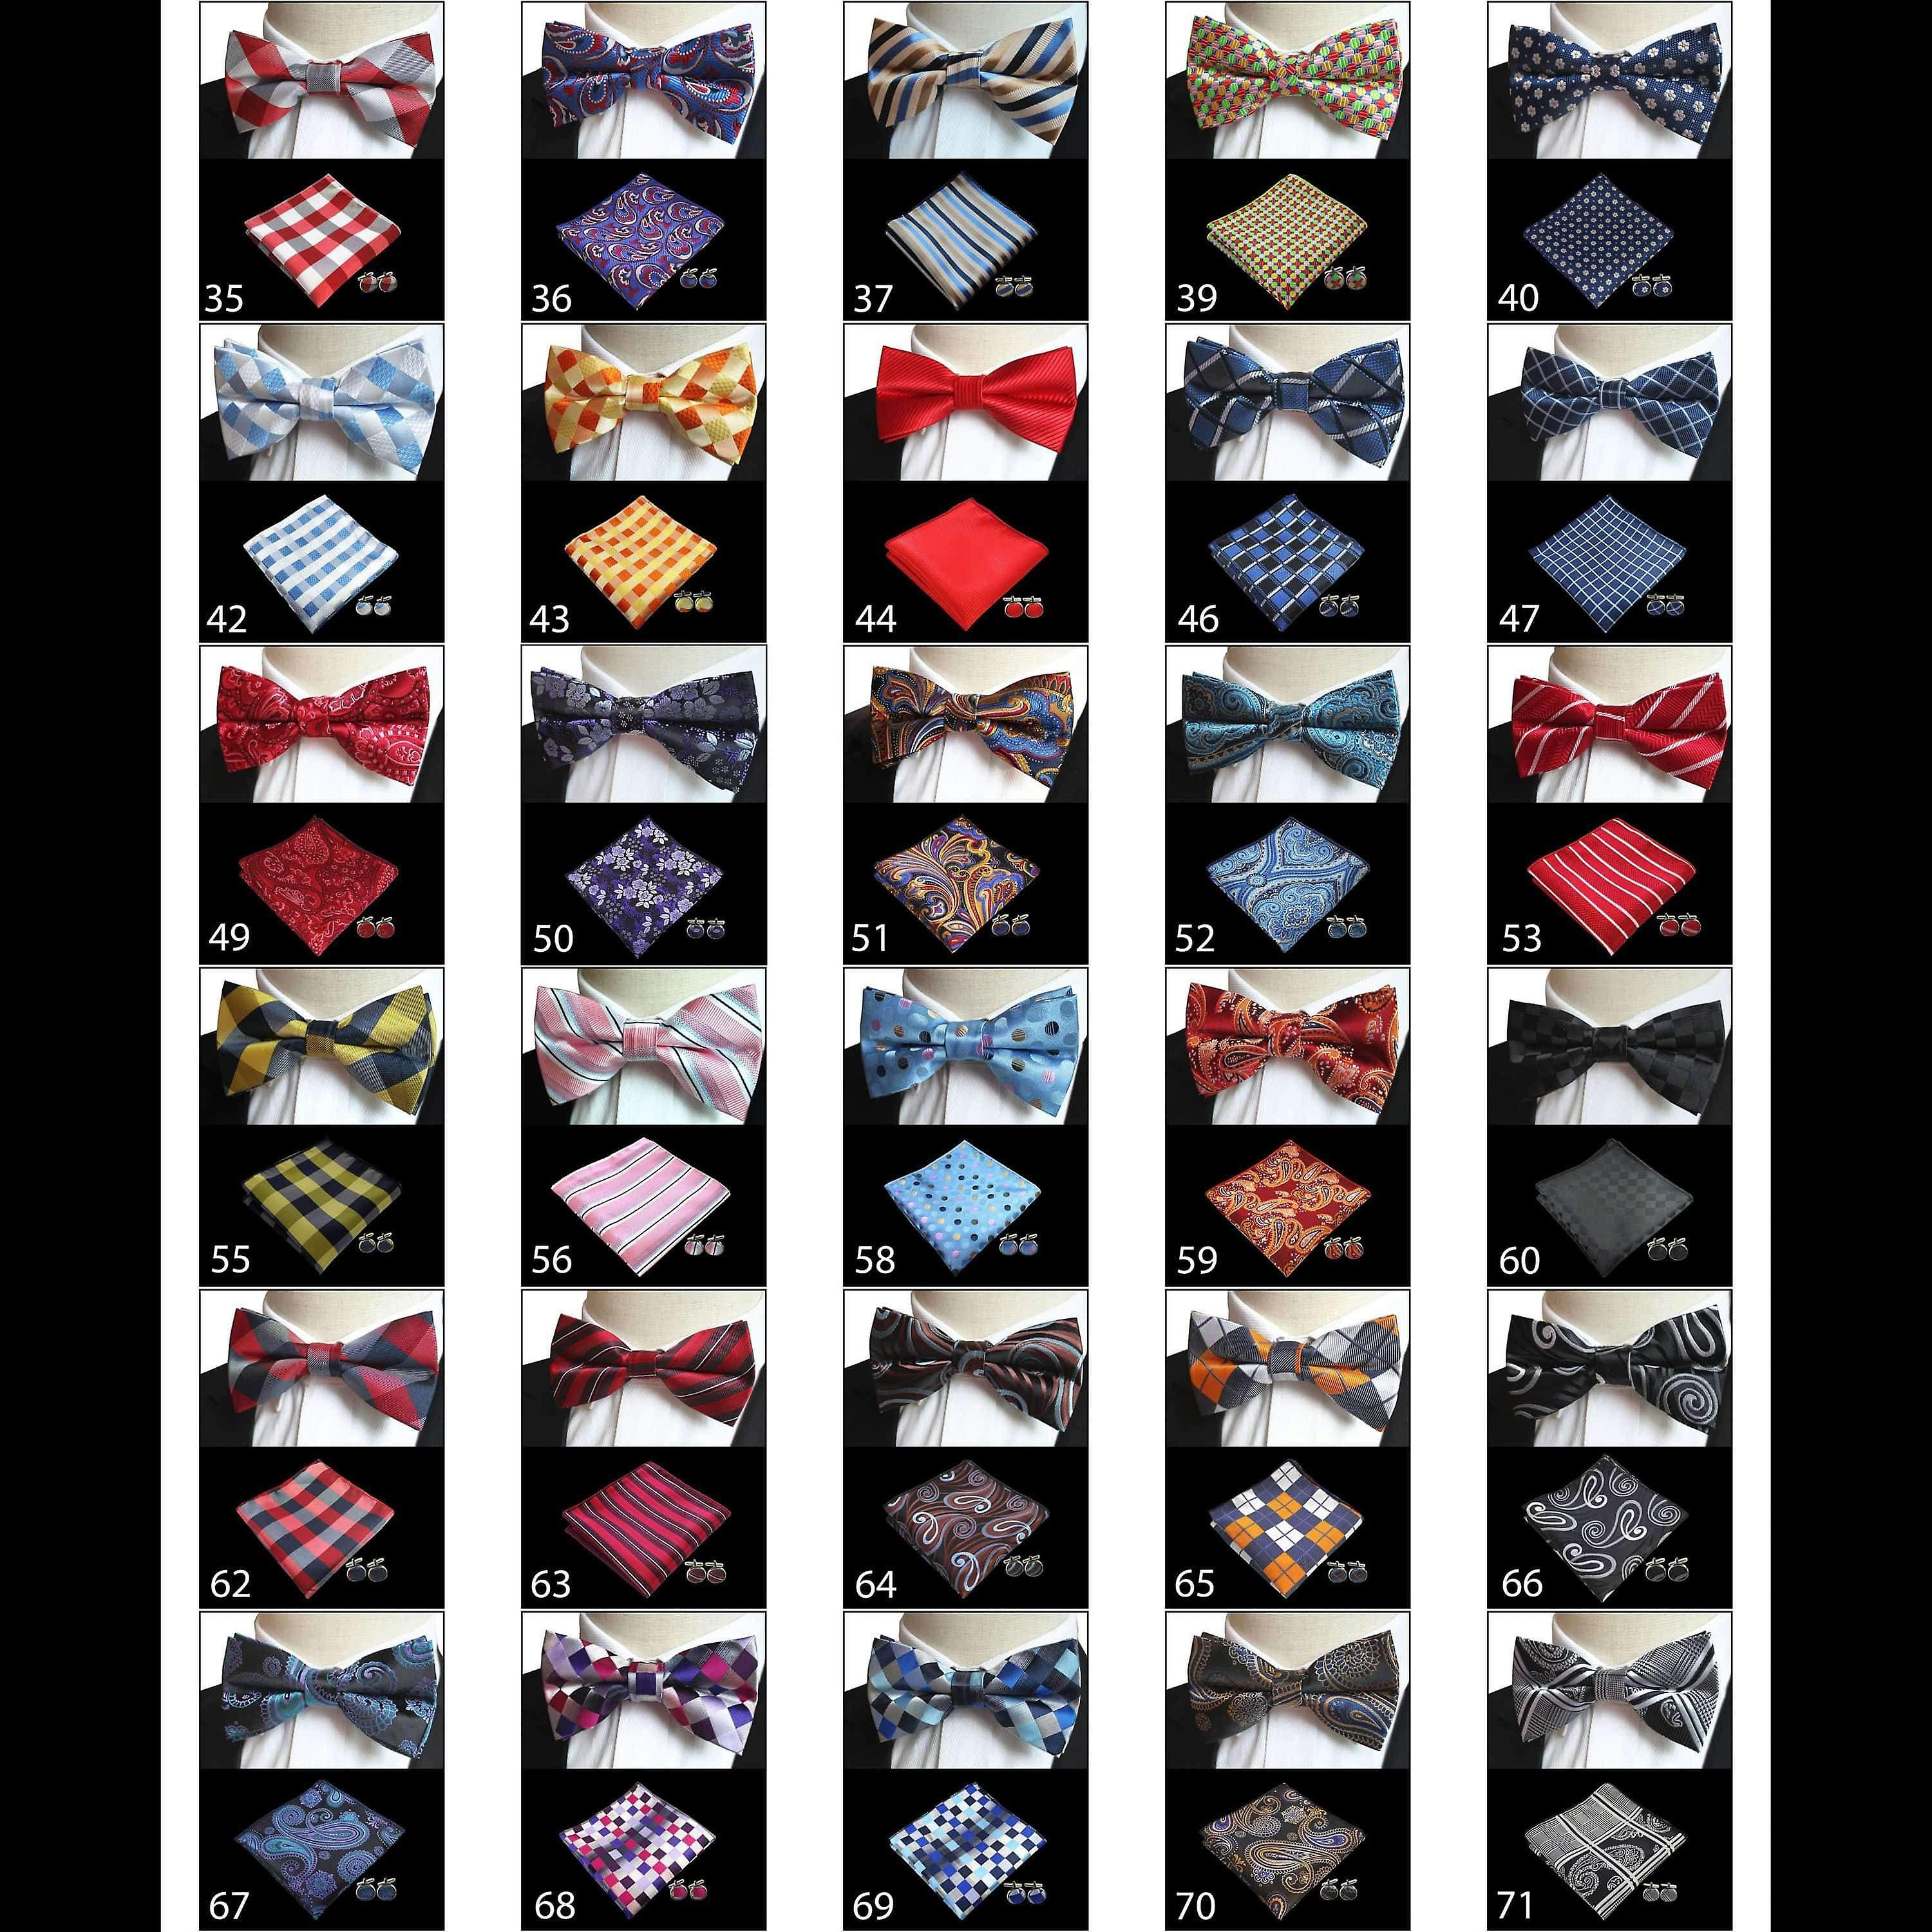 Red green & pink dot bow tie pocket square & cufflink